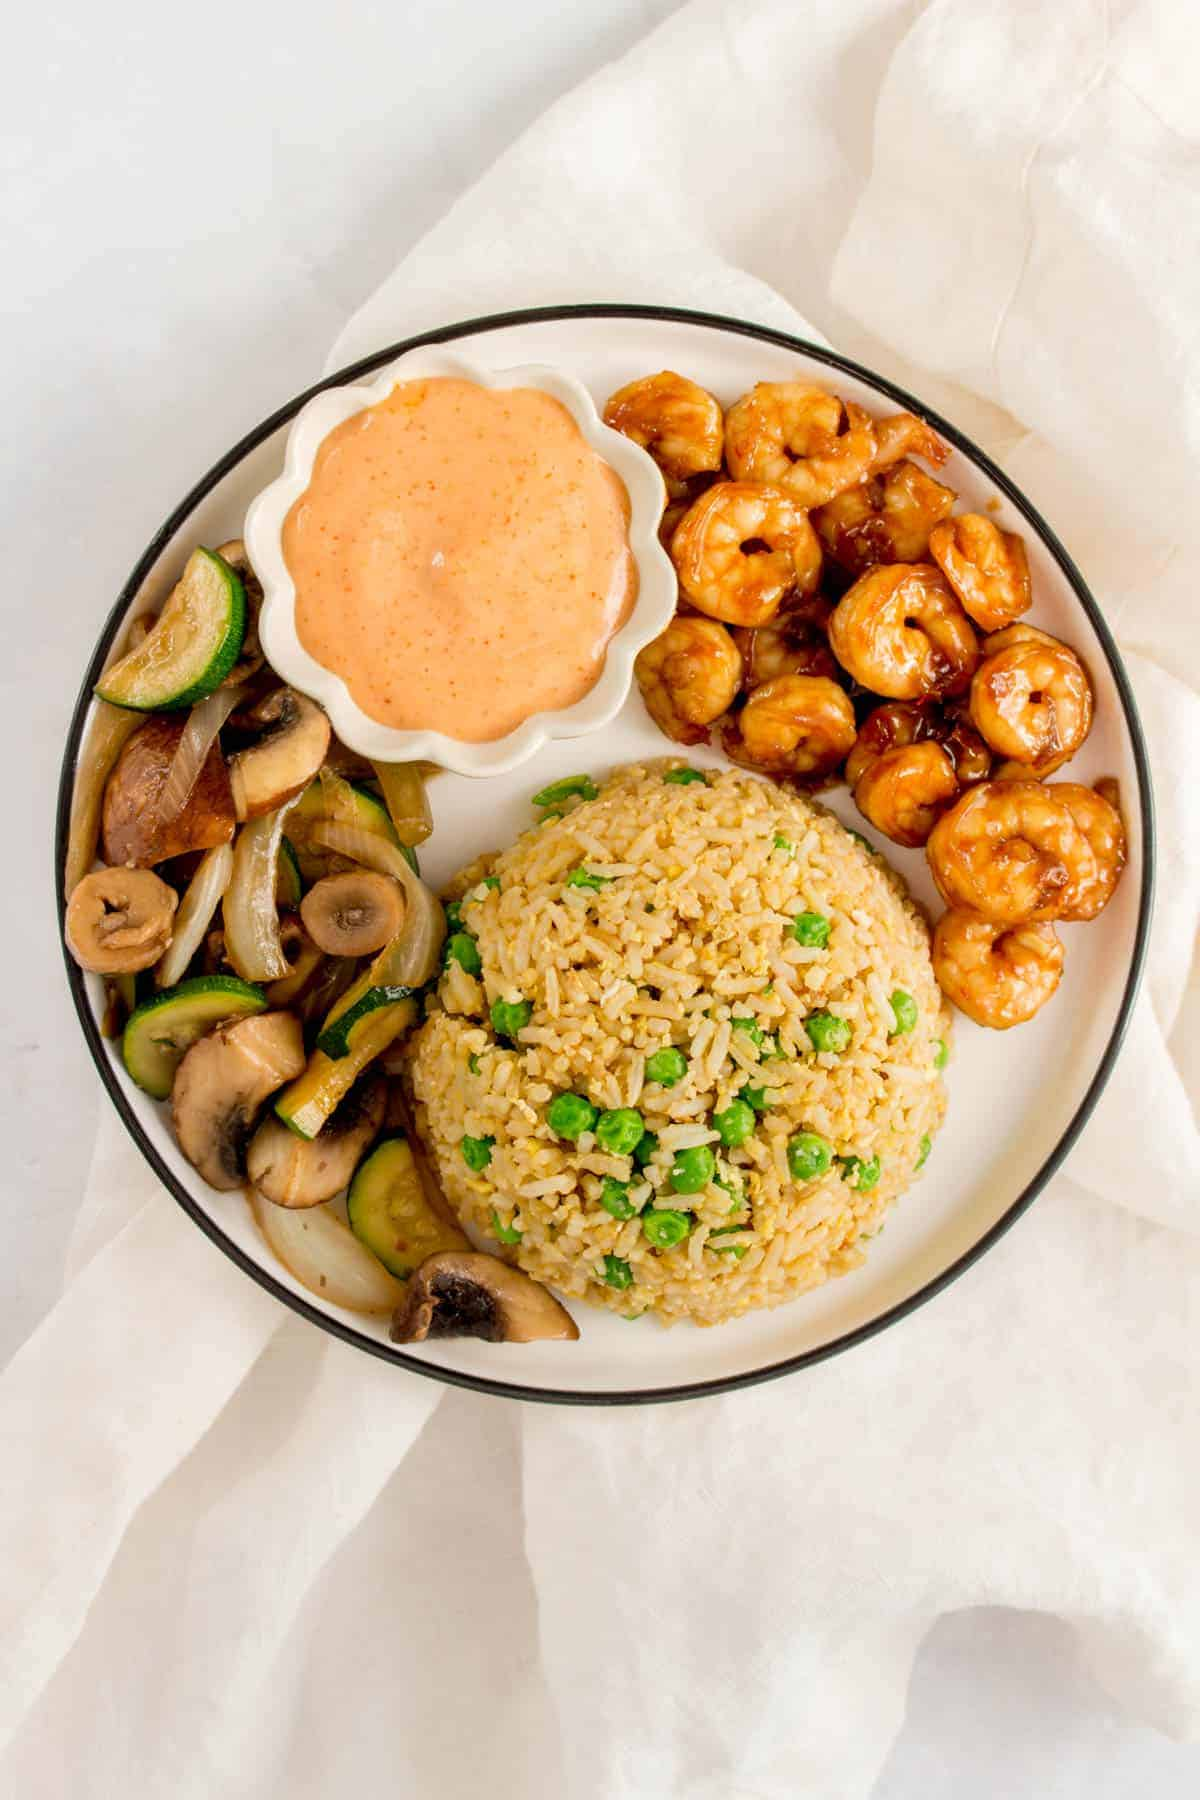 Overhead photo of a plate of hibachi shrimp, vegetables, fried rice, and yum yum sauce.